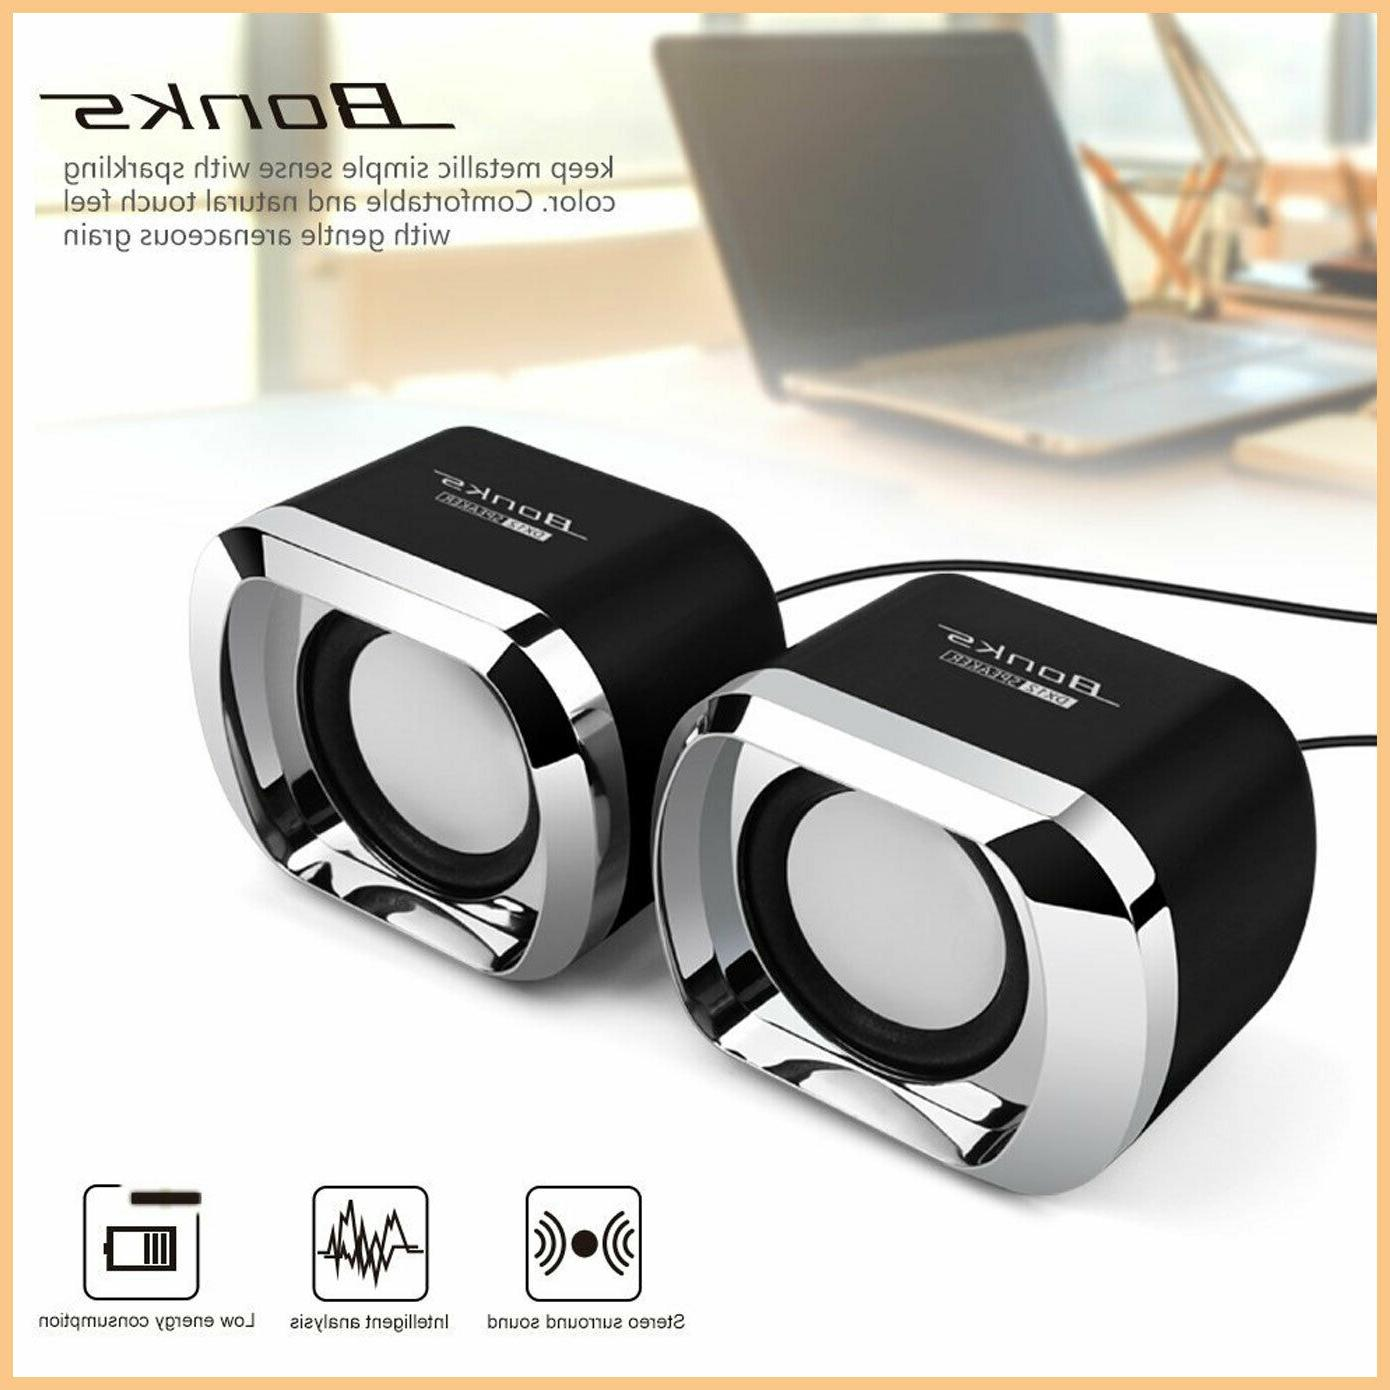 Speakers Computer USB PC Desktop Stereo Black Sound to install